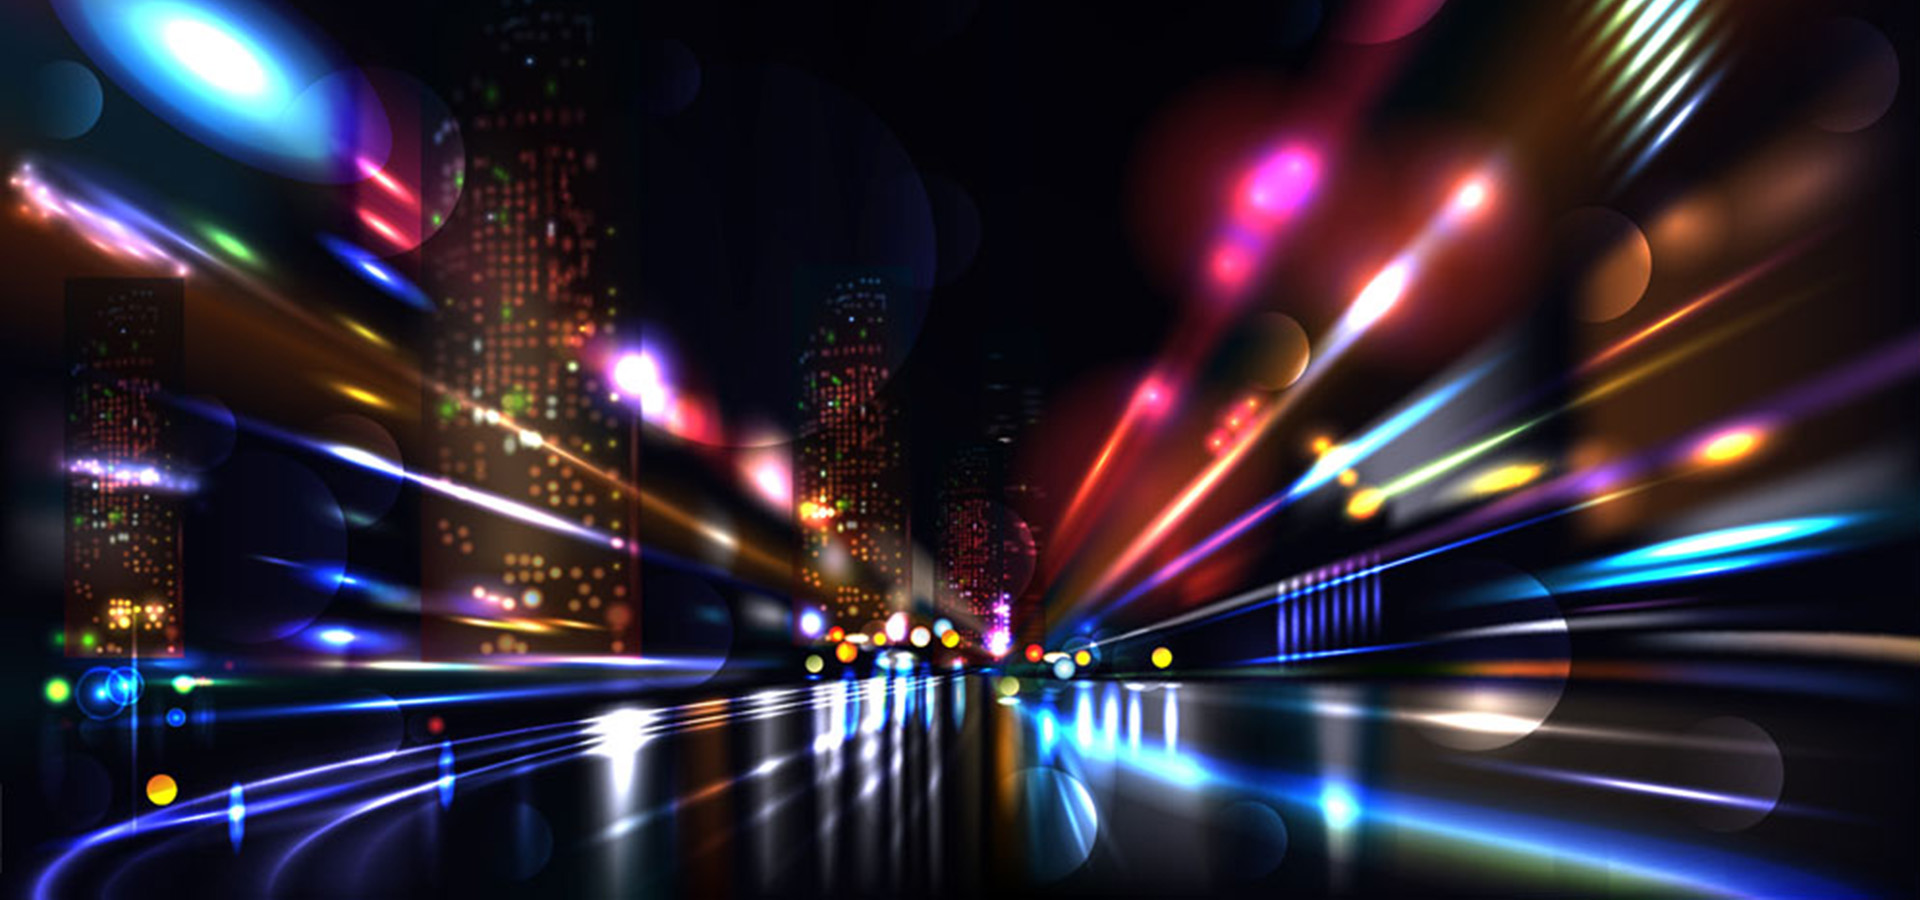 3d Light Effects Ppt Background: Colorful City Background Light Effect, Colorful, City